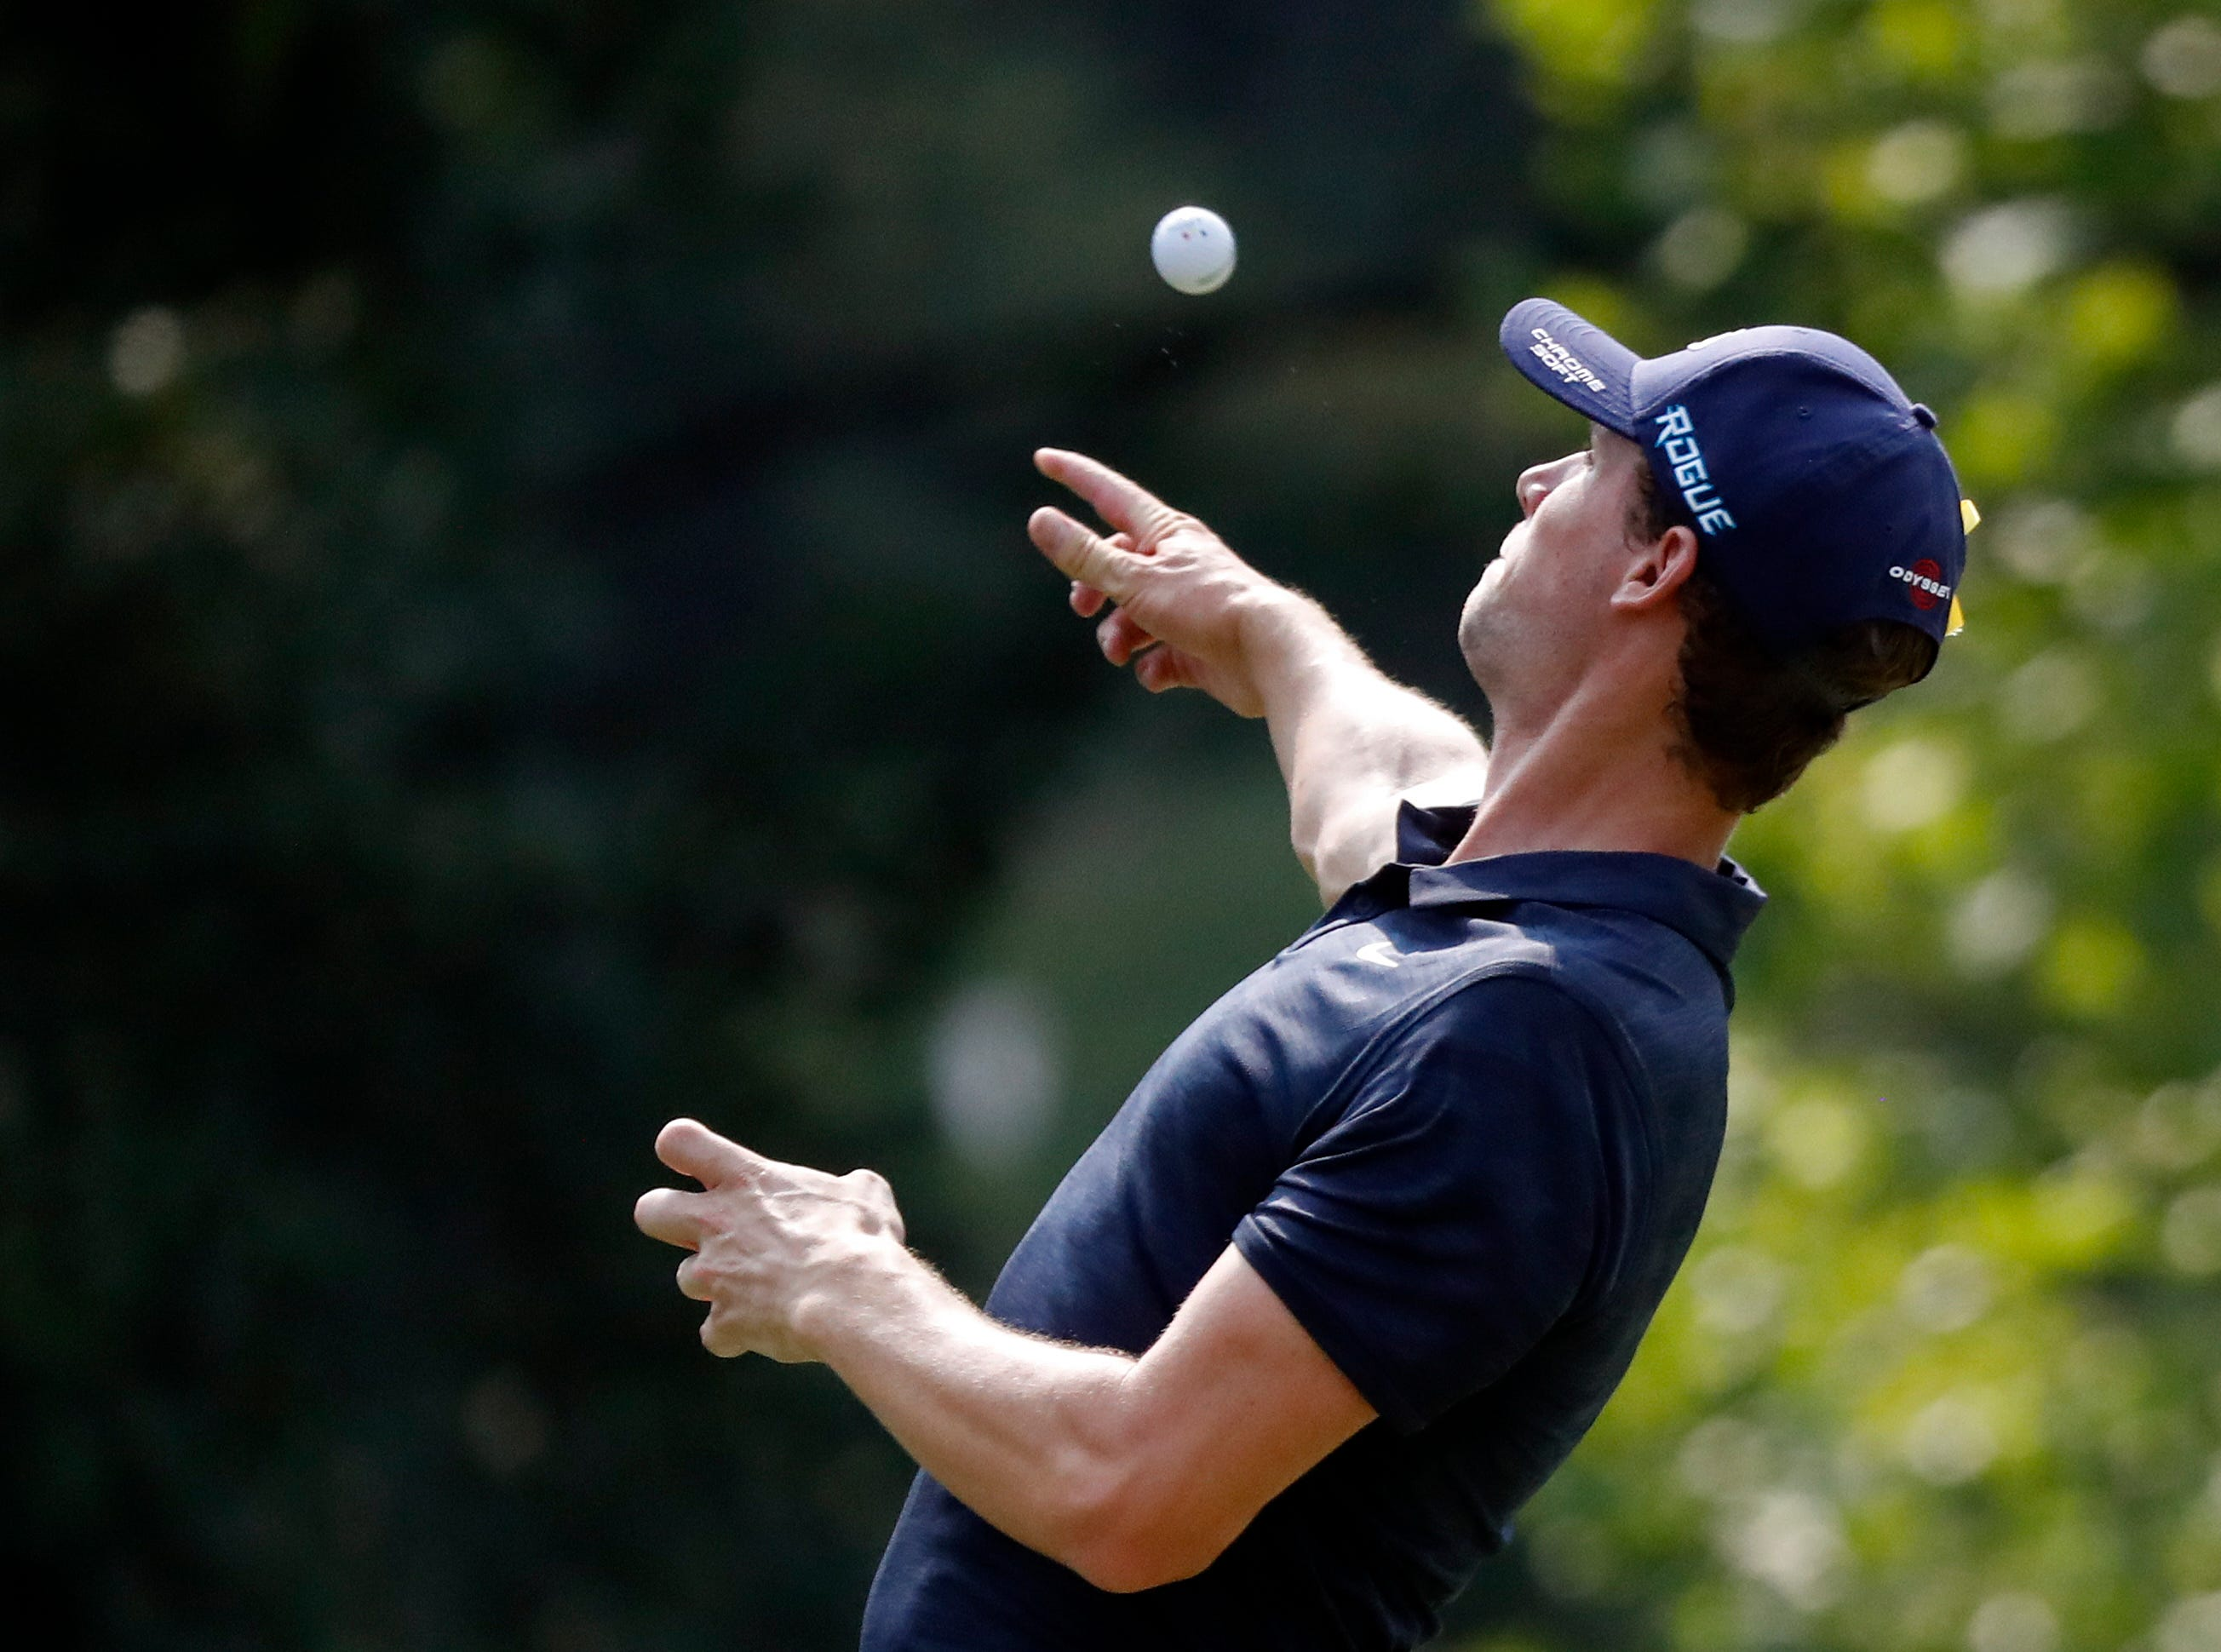 Thomas Pieters throws a ball after finishing the 17th hole.